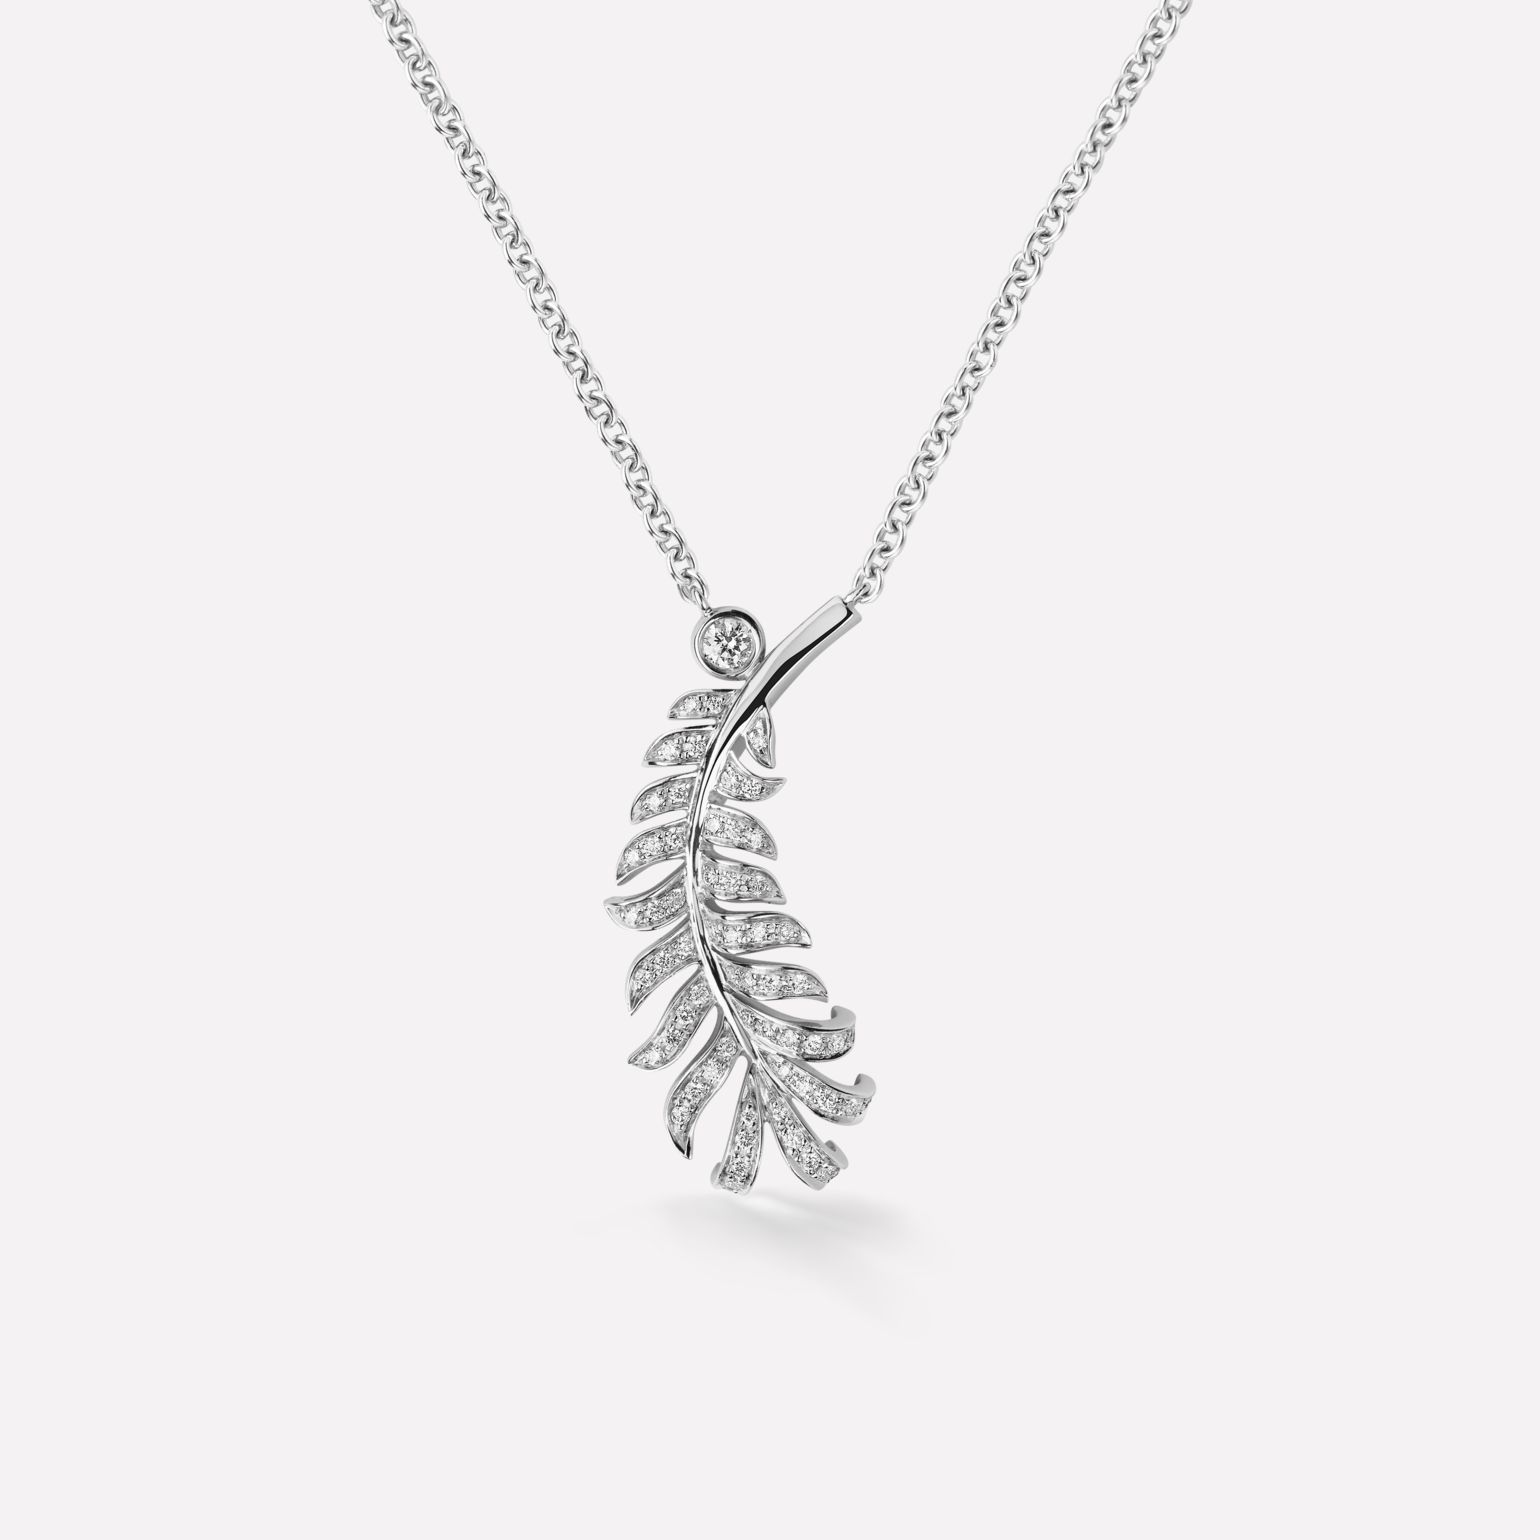 Collier Plume de CHANEL Motif plume en or blanc 18 carats et diamants